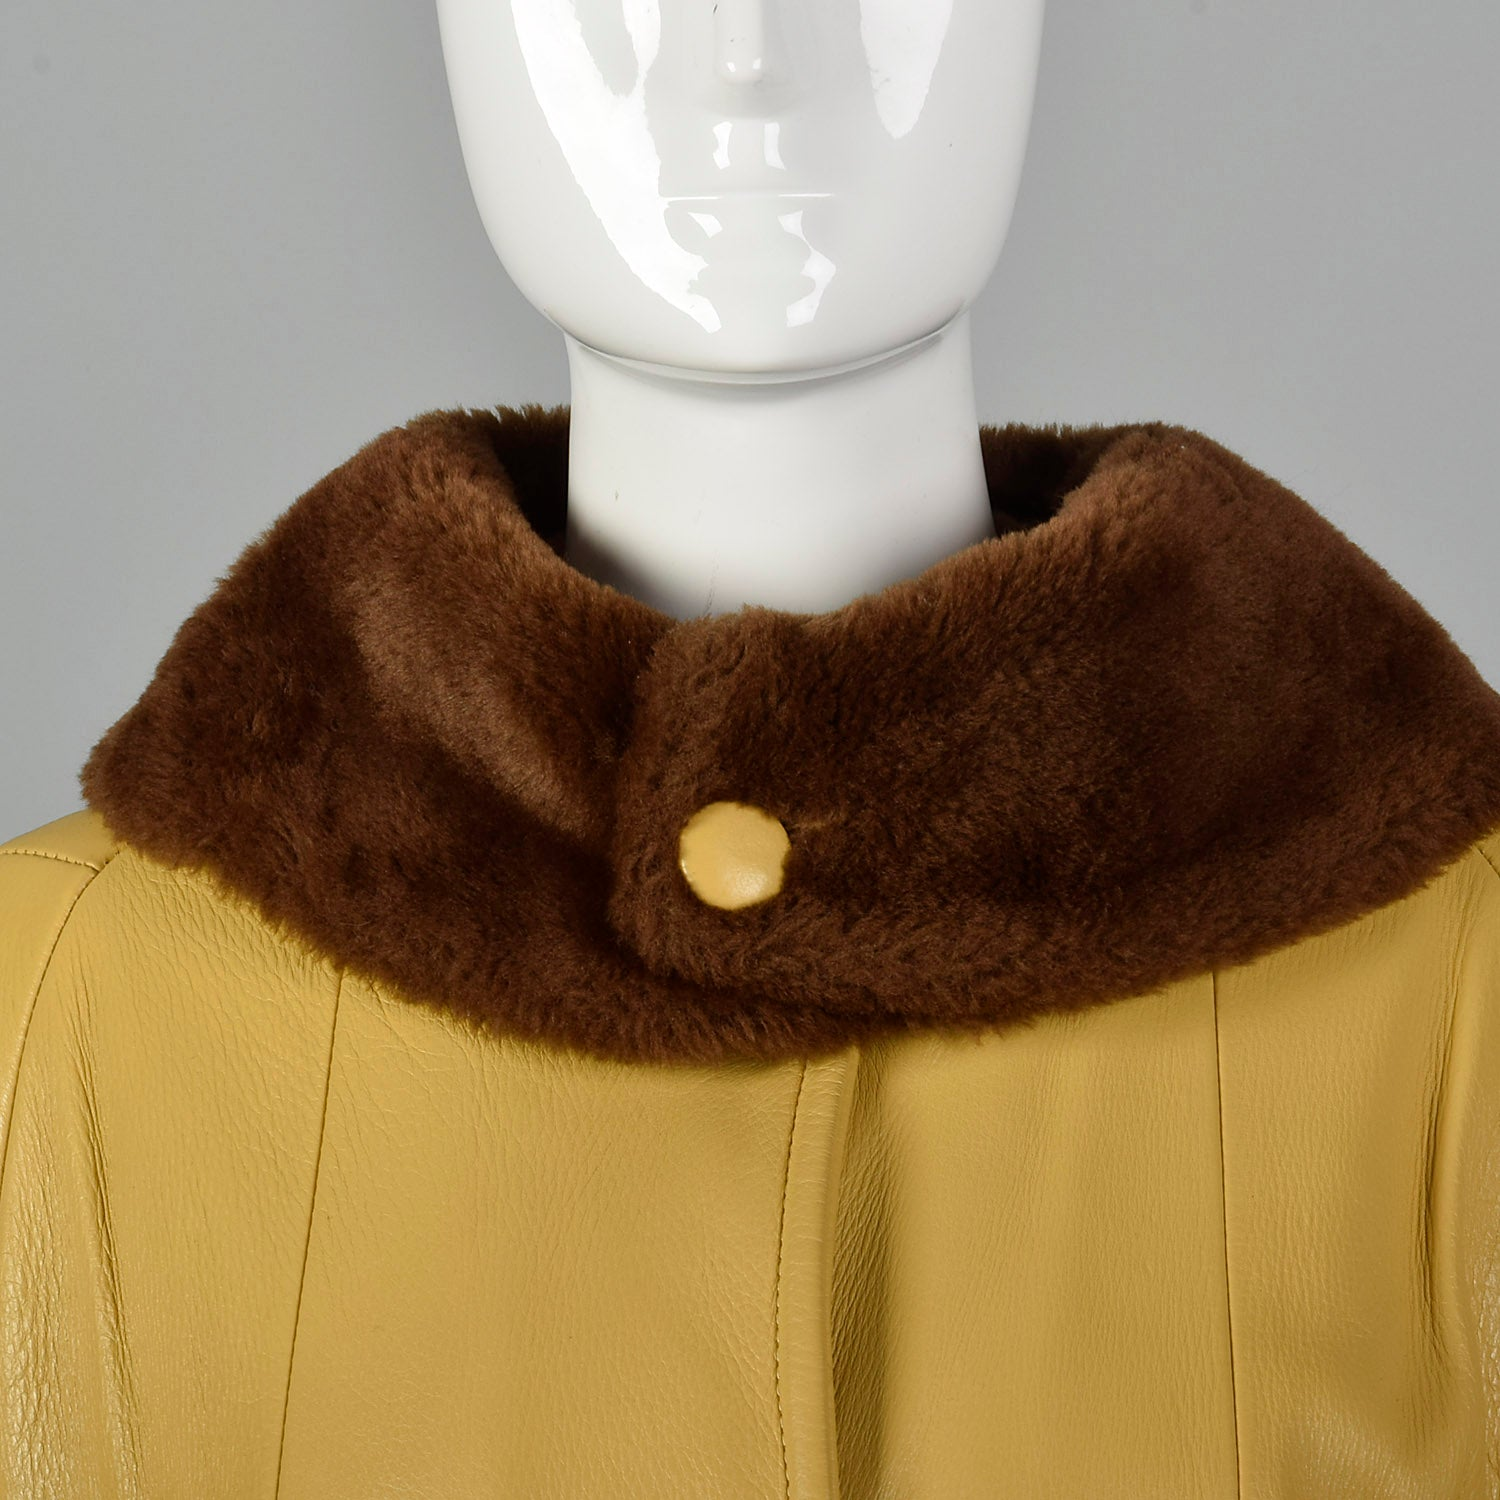 1960s Mustard Yellow Leather Jacket with Brown Faux Fur Trim